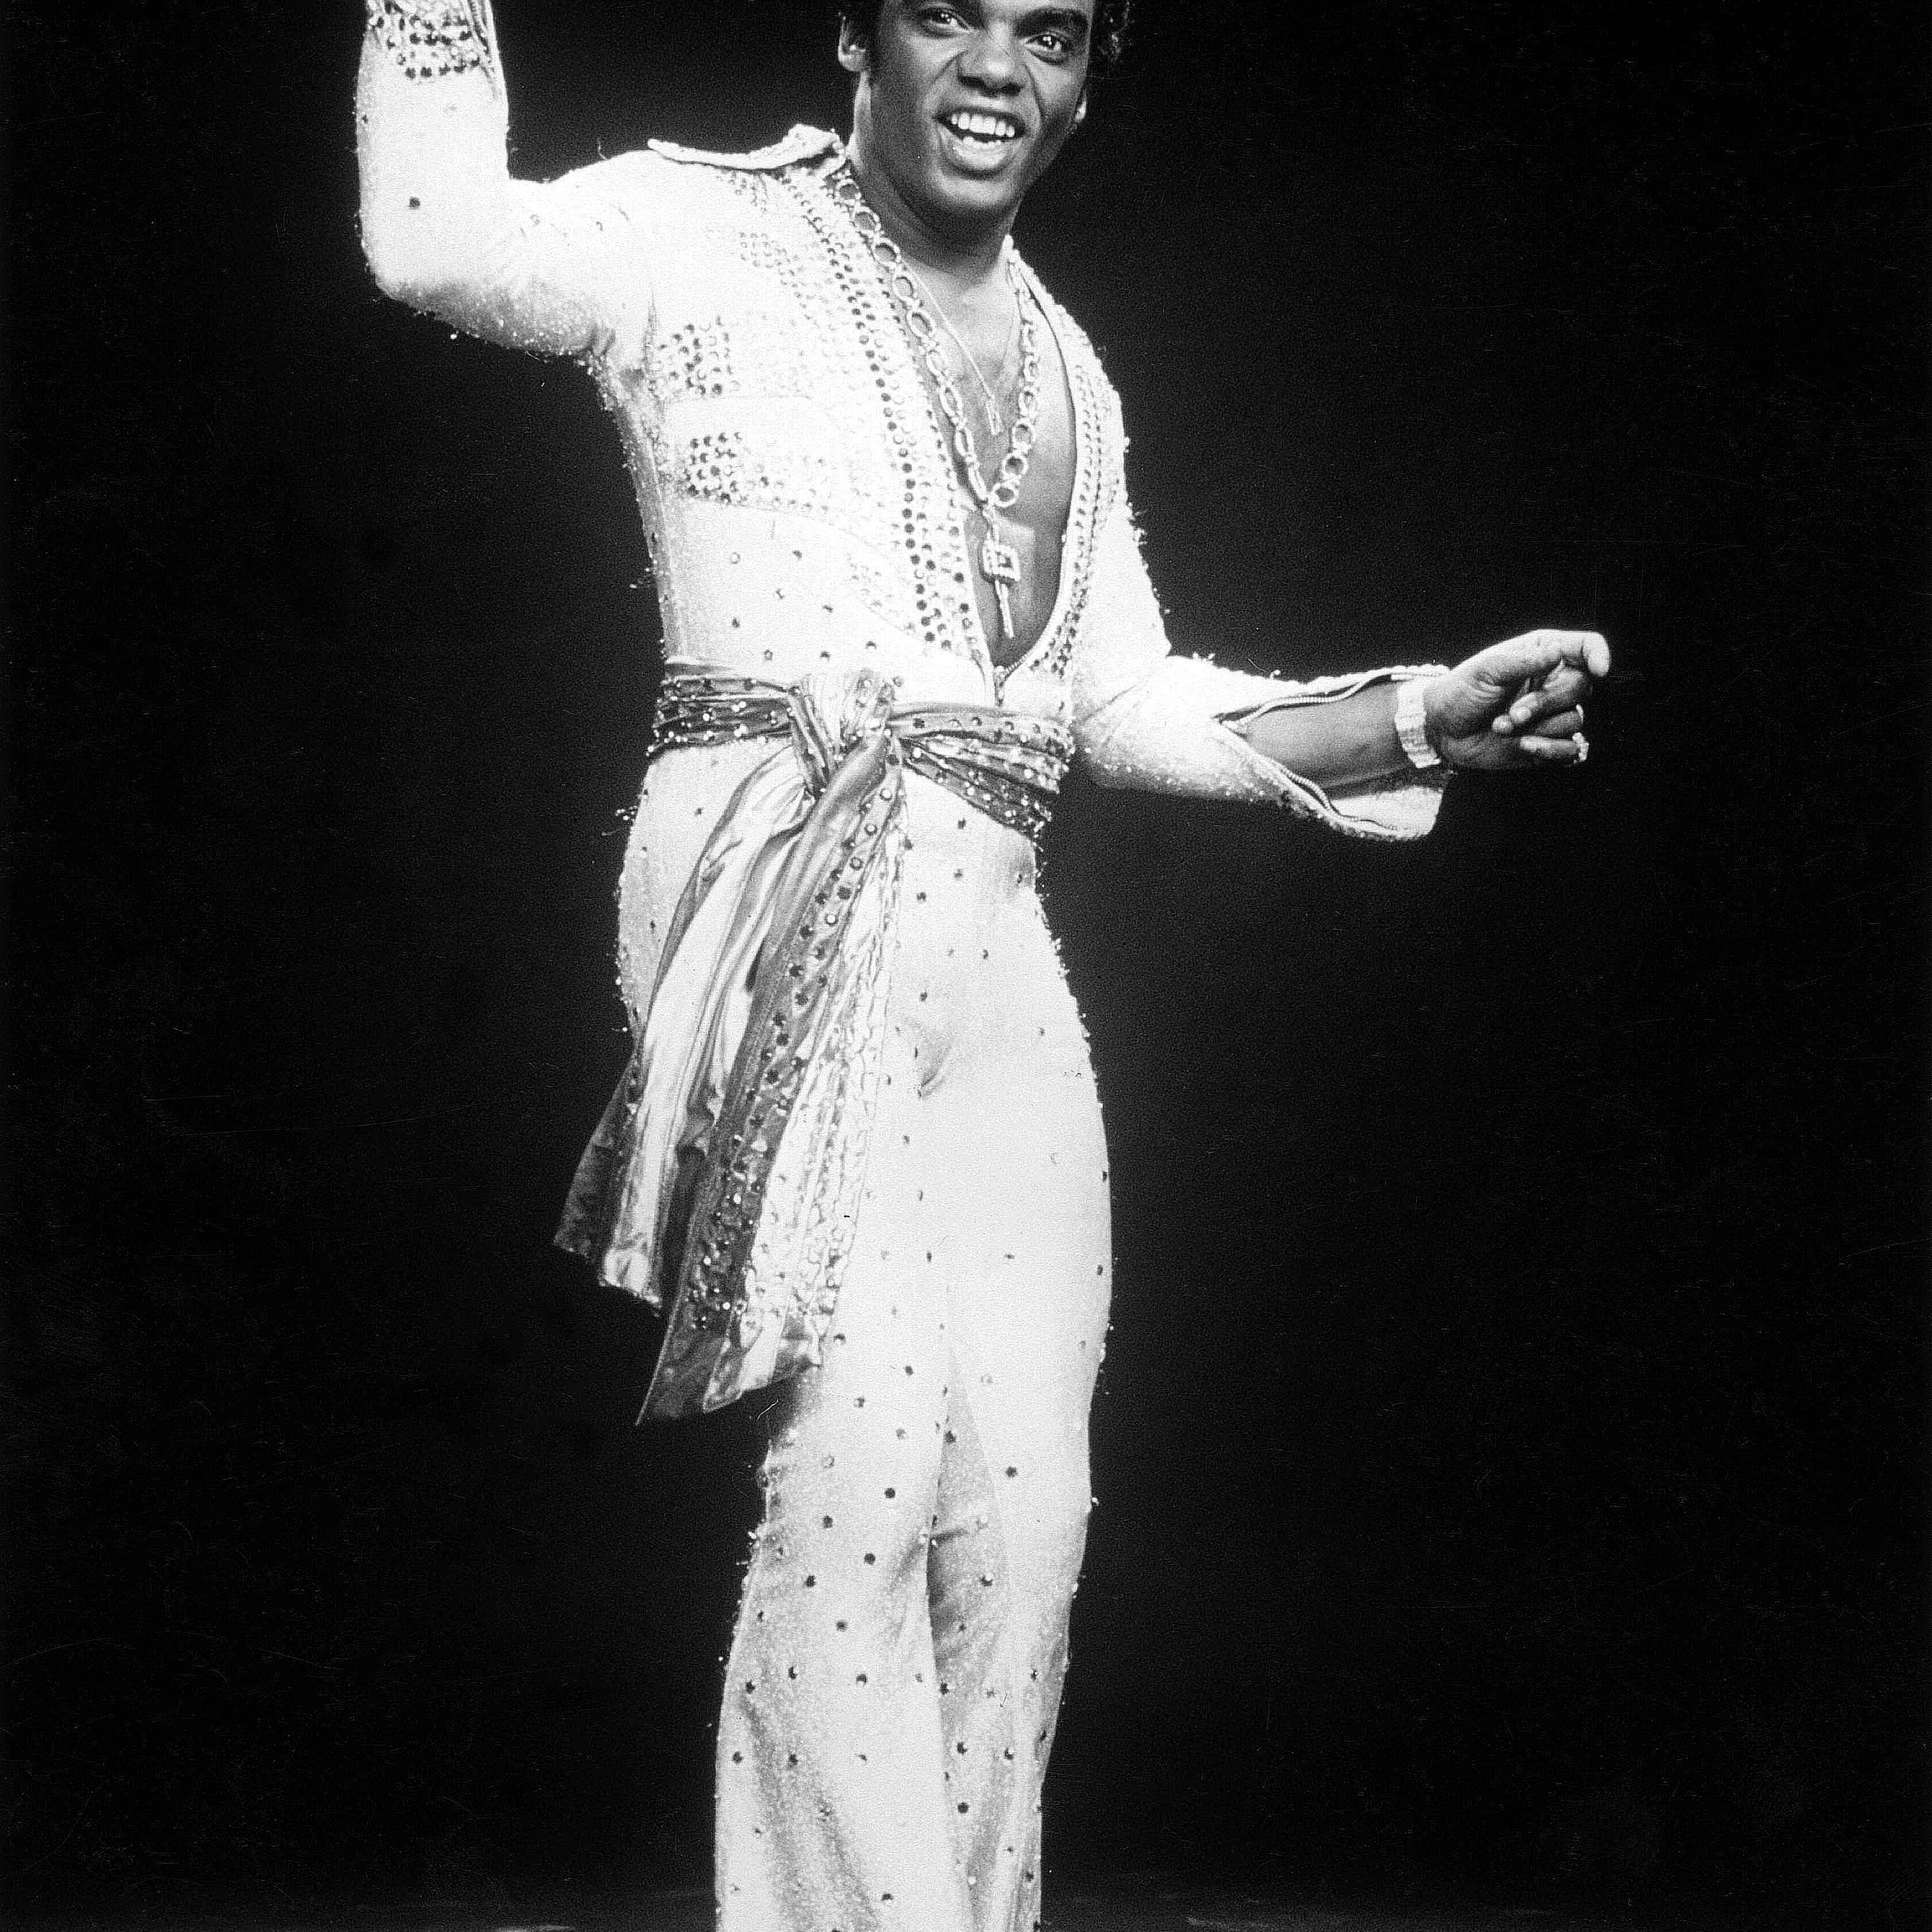 Portrait of Ronald Isley during a performance